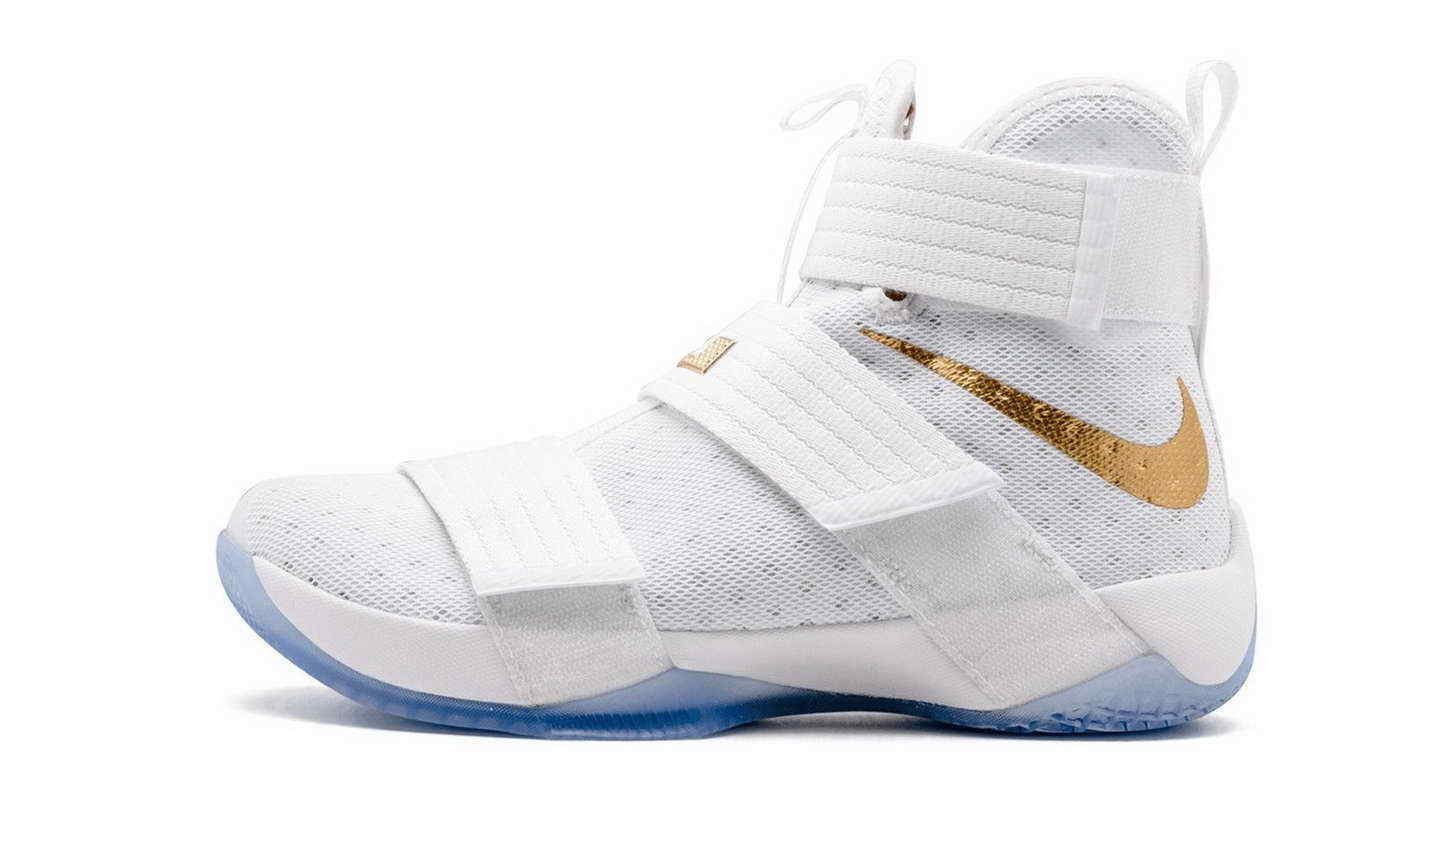 Nike Lebron Soldier 10 Game 6 Championship Unbroken PE Comfortable Comfortable and good-looking